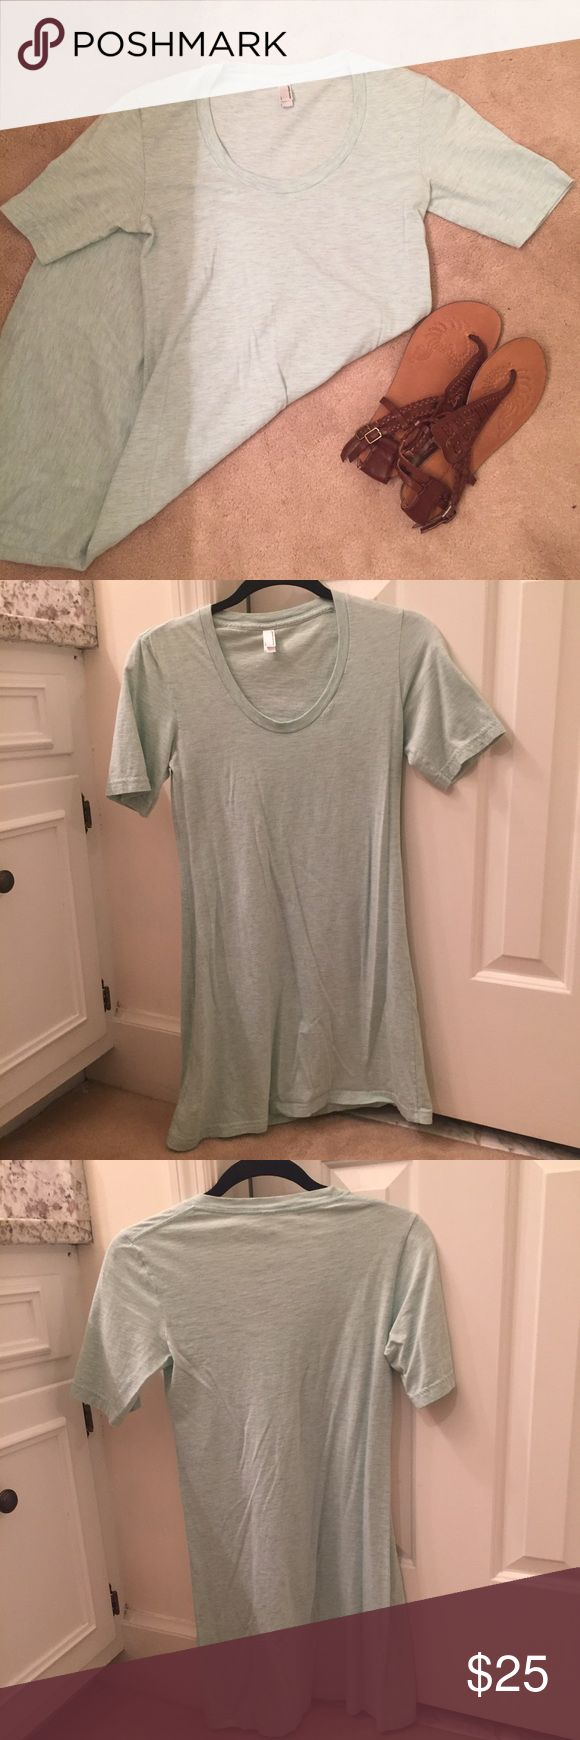 American Apparel T-Shirt Dress Super cute tee dress that can go from day to night. It's a light mint green. American Apparel Dresses